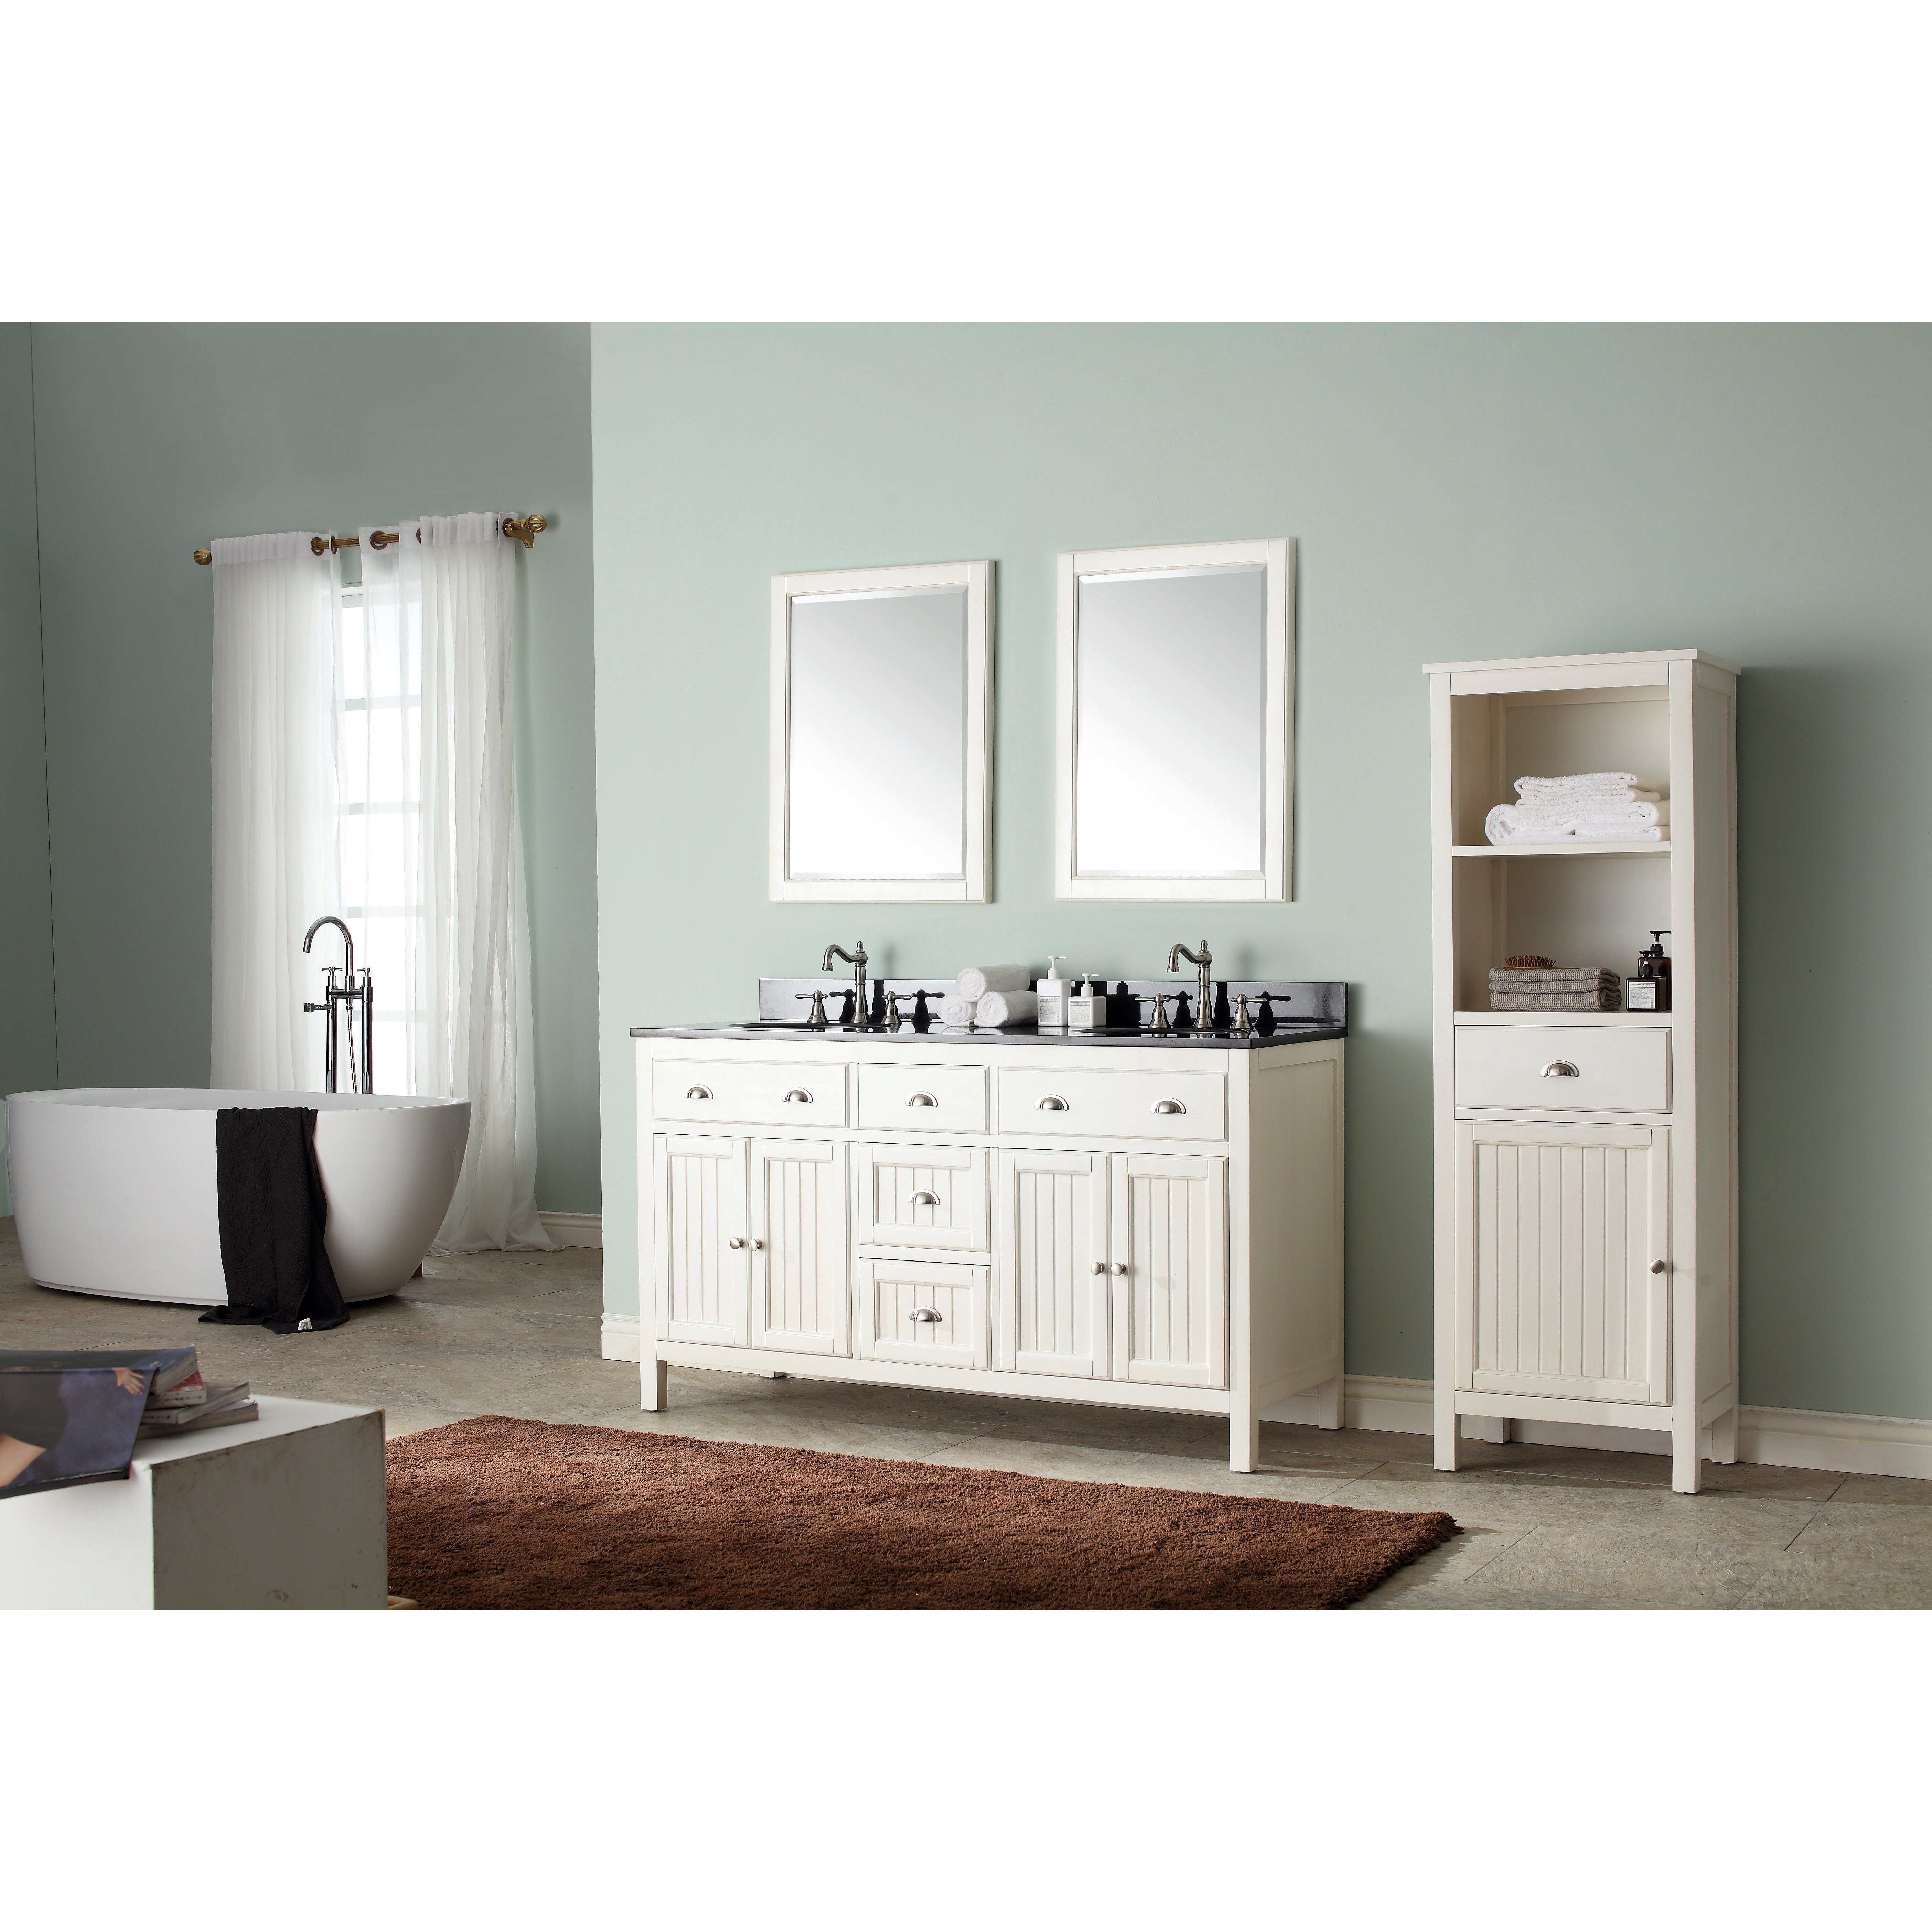 43 Bathroom Vanity #22: Avanity Hamilton 43u0026amp;quot; Single Bathroom Vanity Set